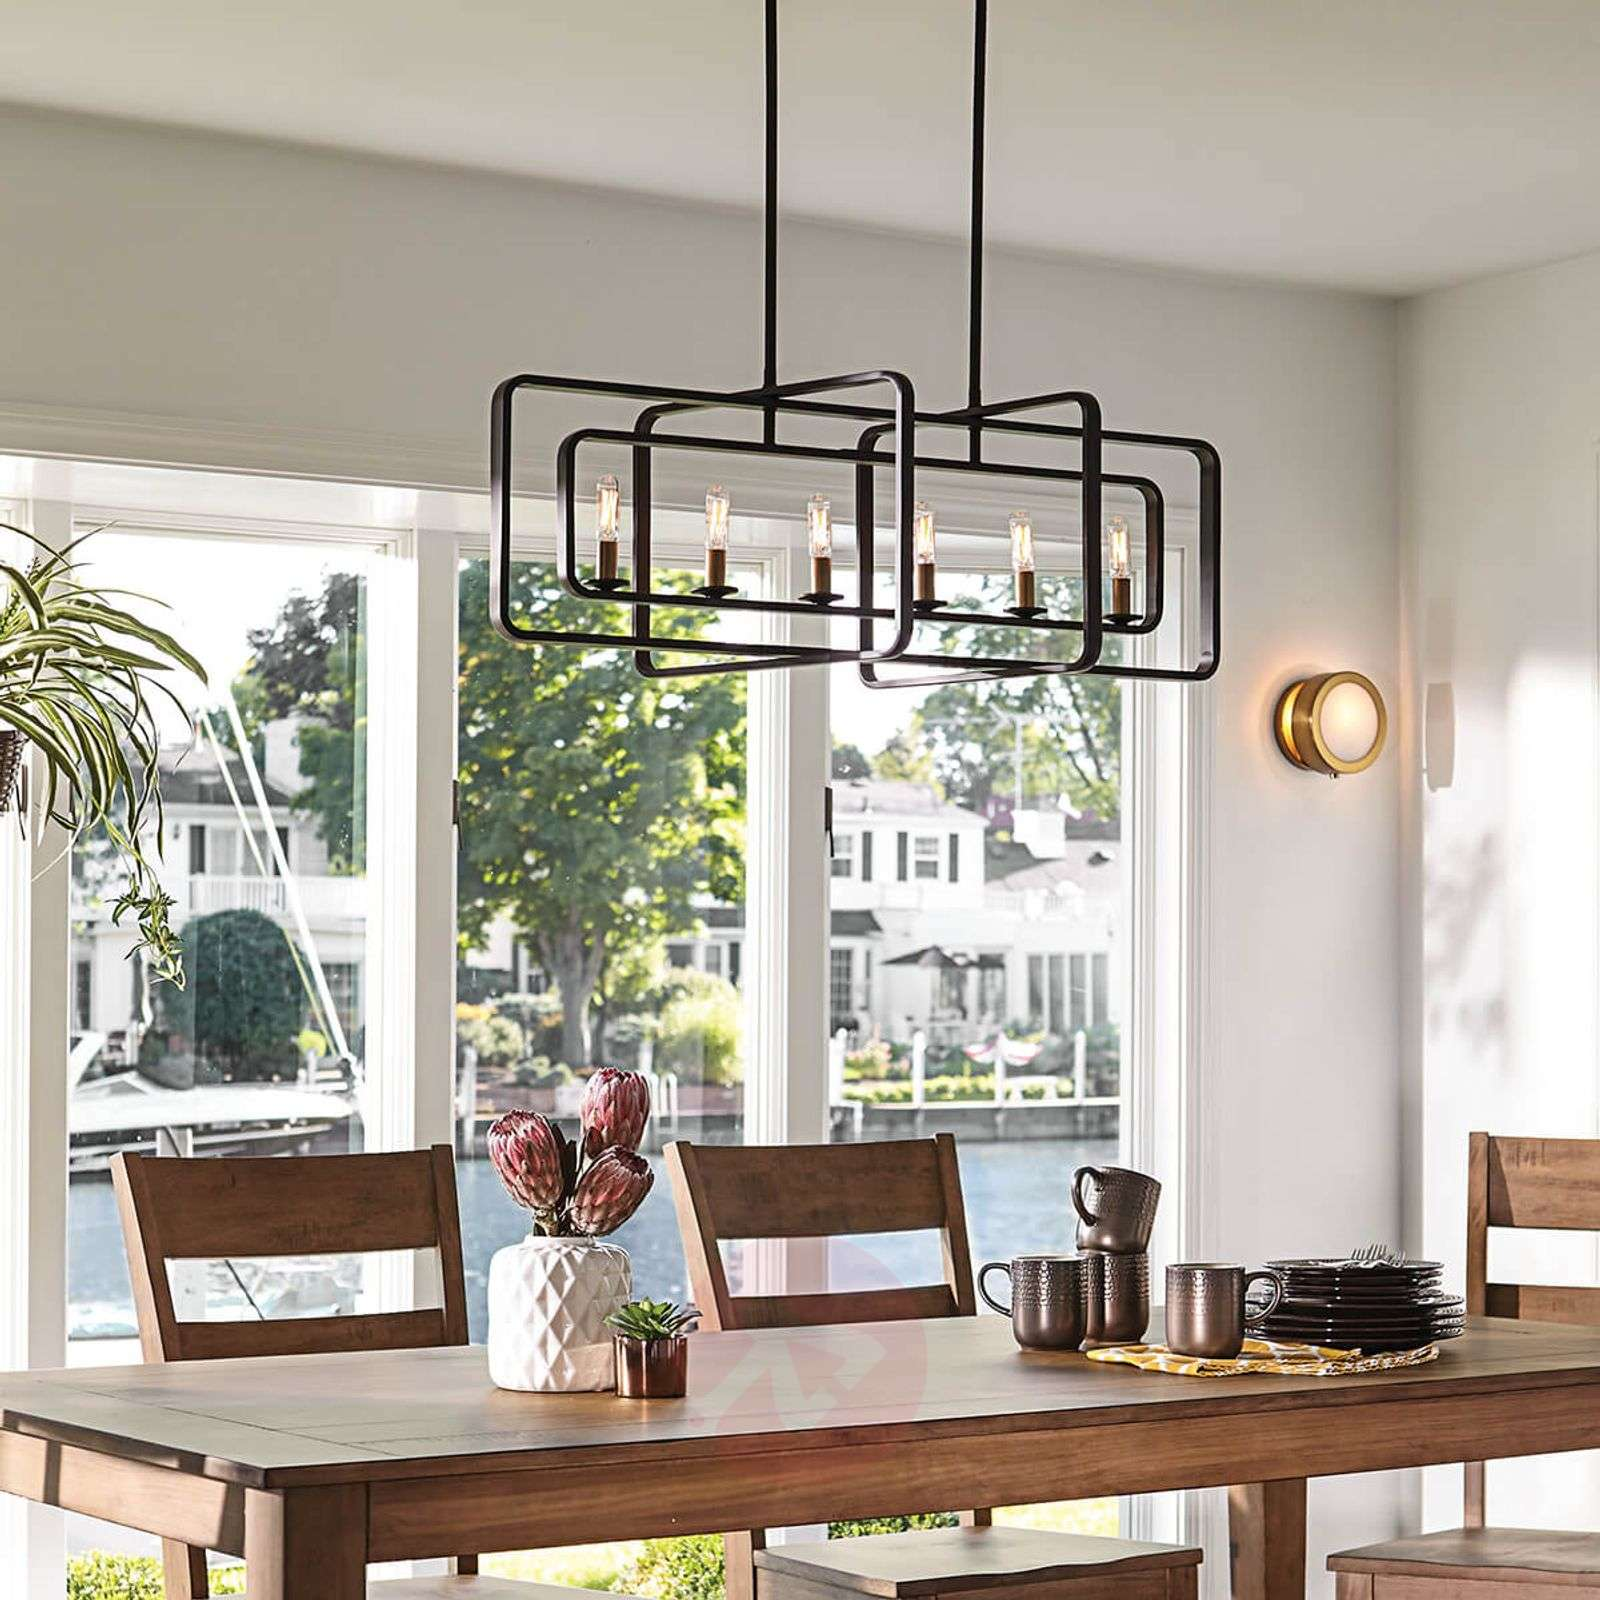 Extravagant chandelier Quentin six-bulb-3048776-01